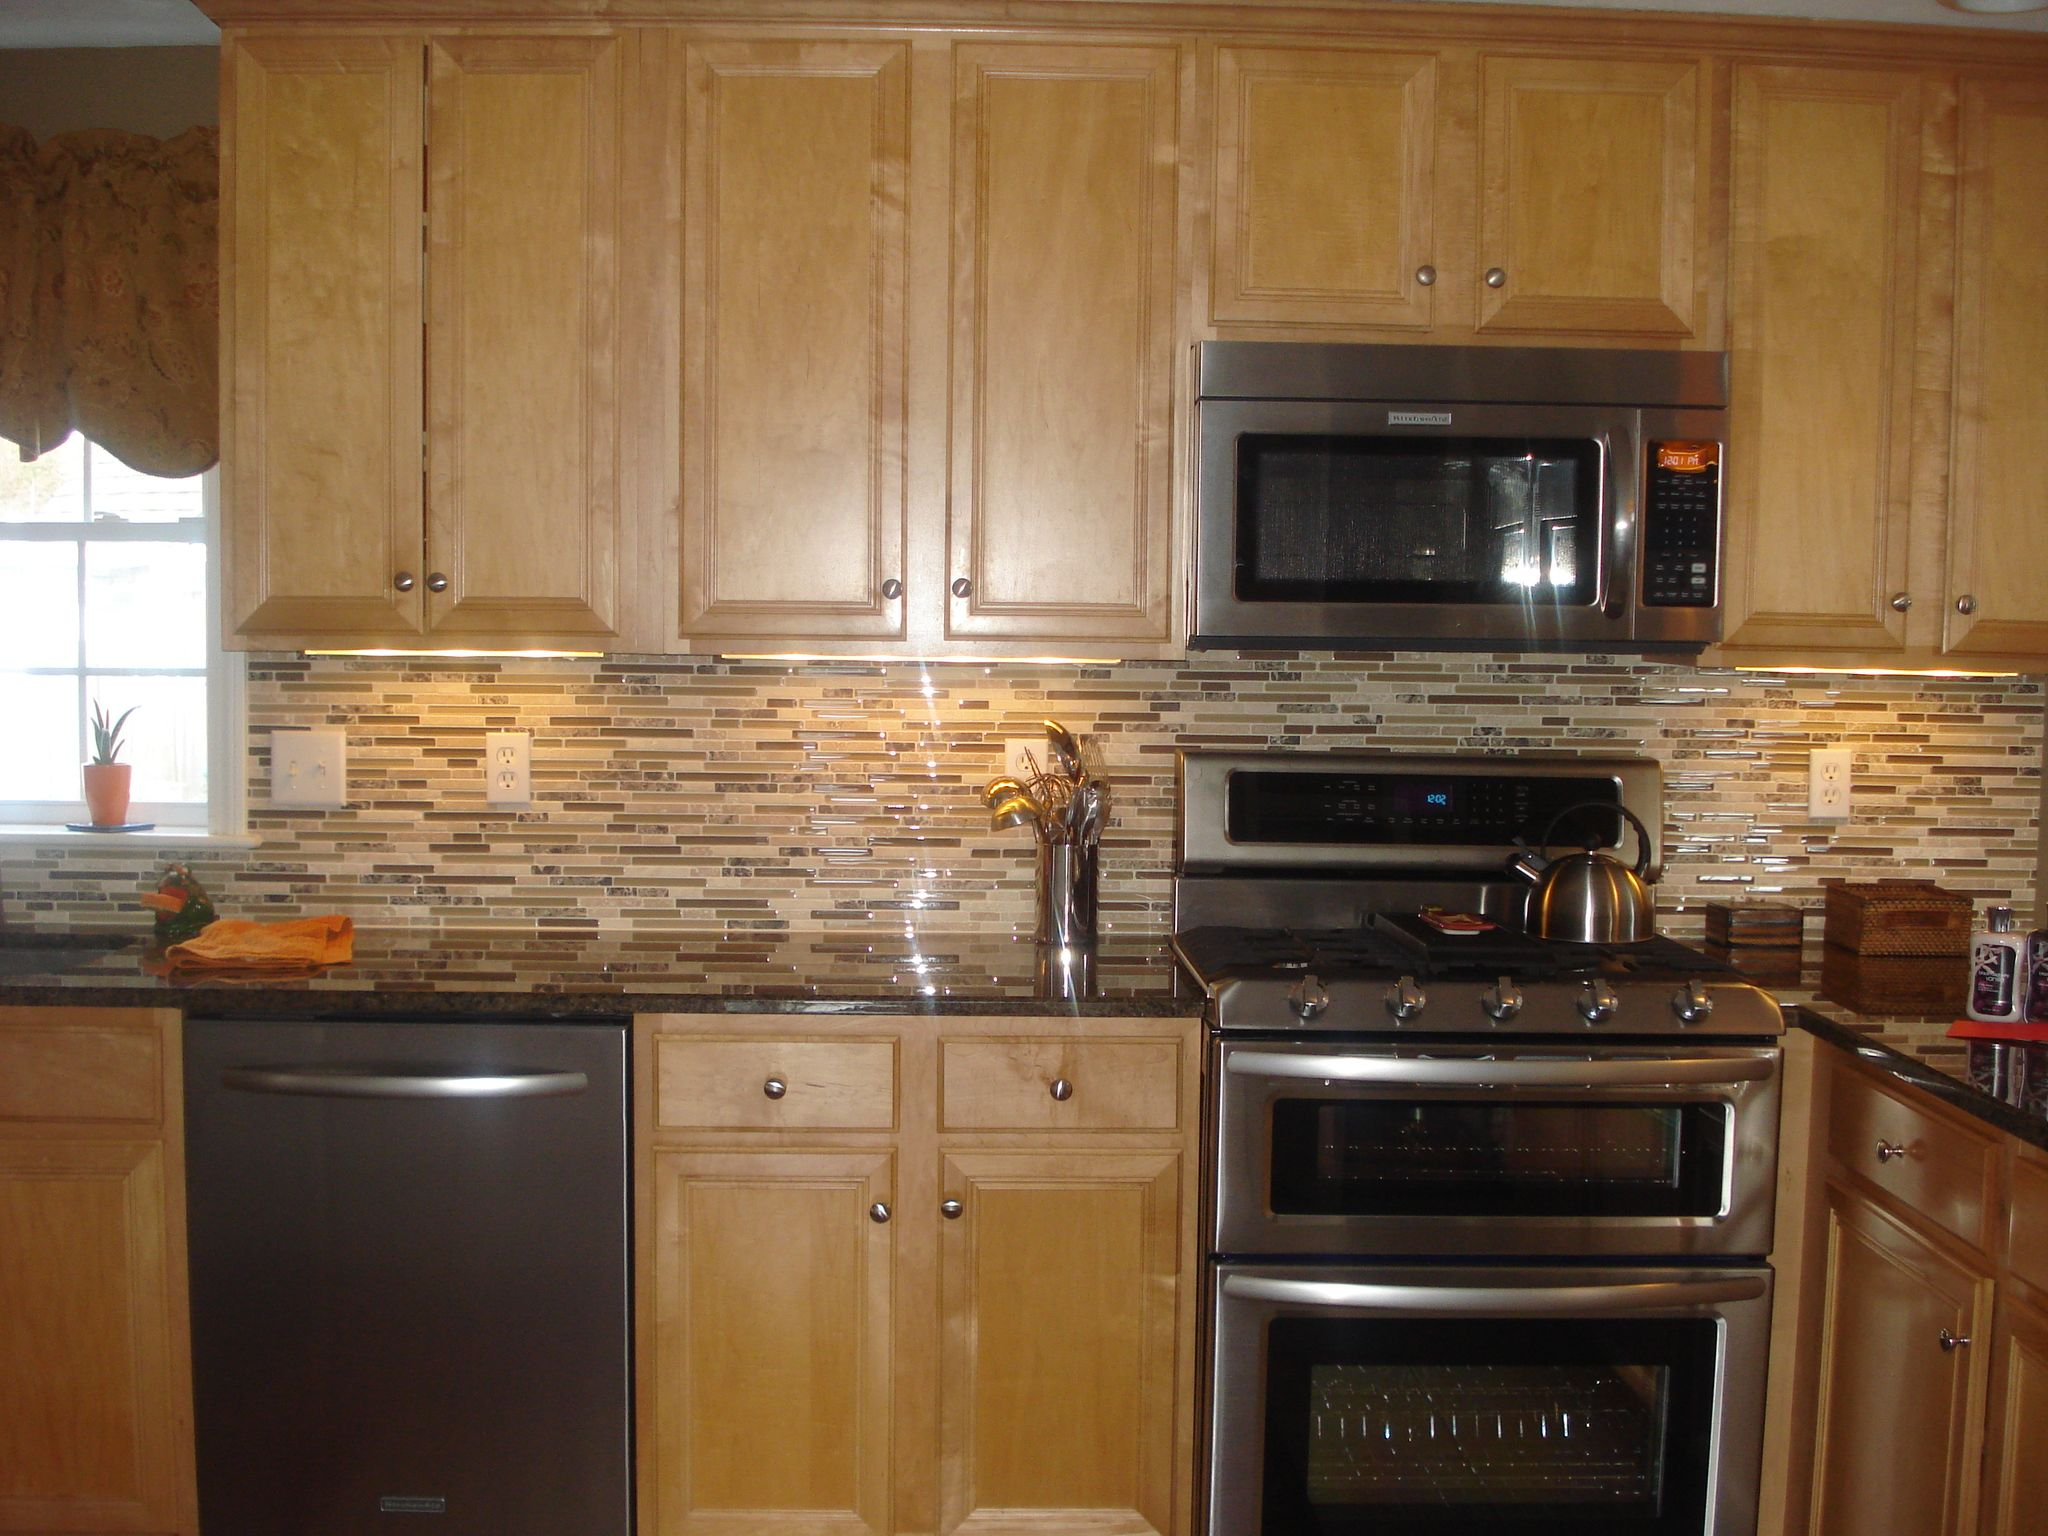 kitchen counter ideas oak cabinets kitchen counters and backsplash Backsplash Gl Tile Brown With Cabinets